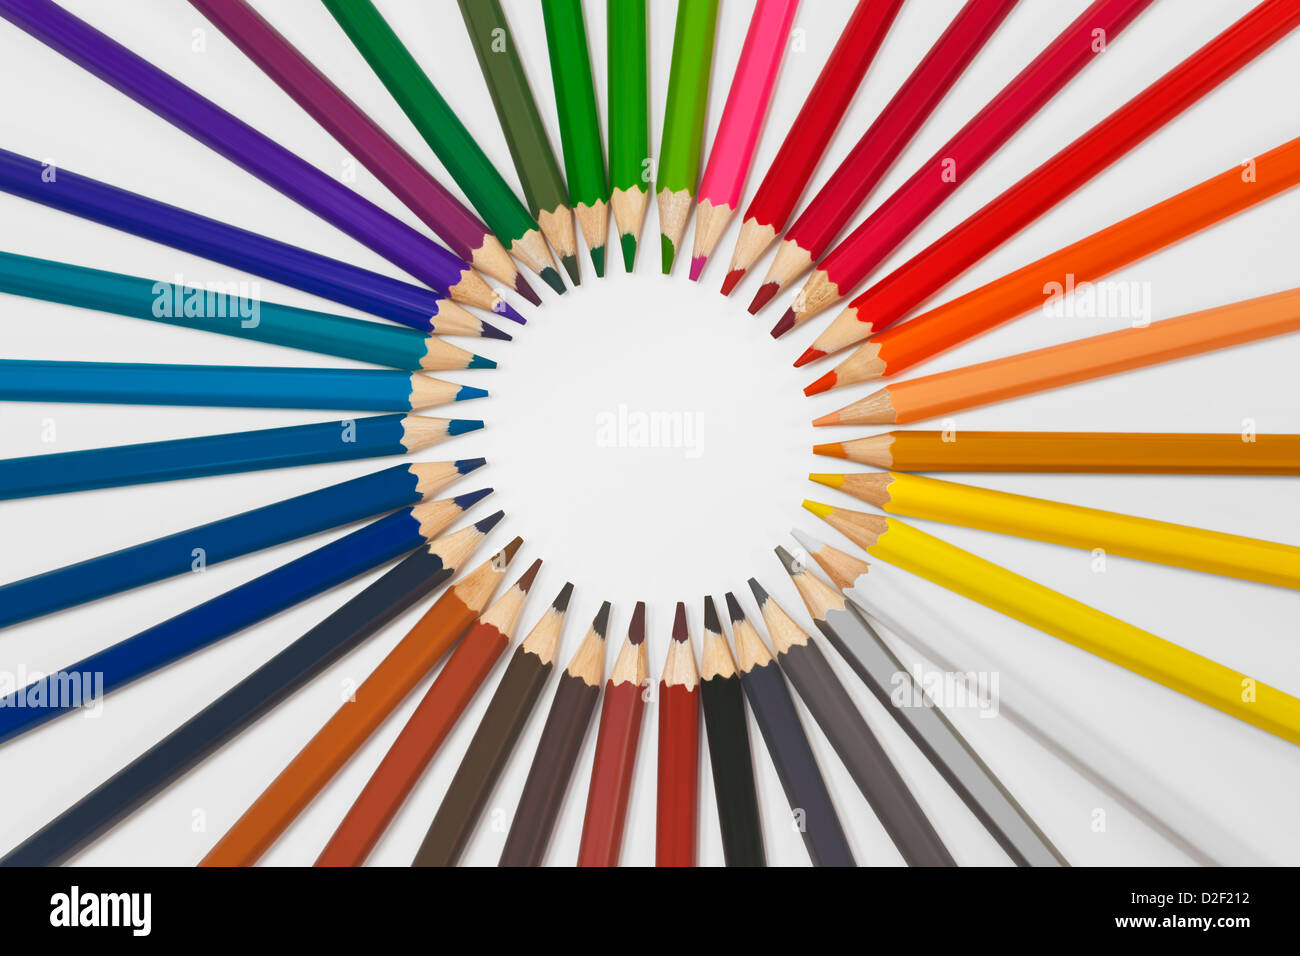 Viele Bunstifte liegen im Kreis | Many colored pencils are in a circle - Stock Image